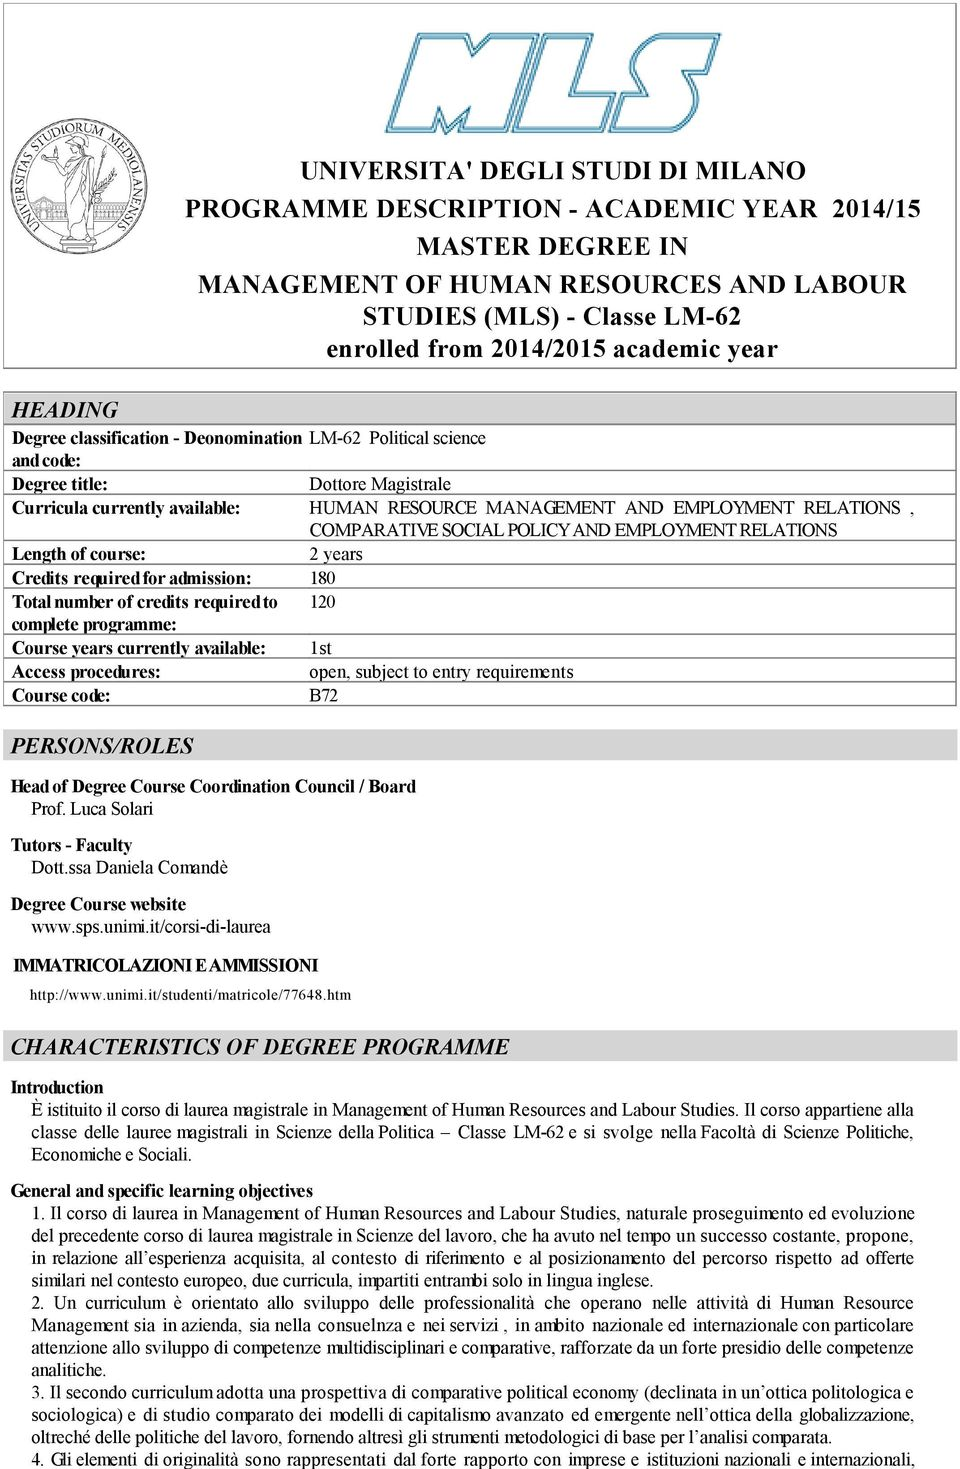 RELATIONS, COMPARATIVE SOCIAL POLICY AND EMPLOYMENT RELATIONS Length of course: 2 years Credits required for admission: 180 Total number of credits required to 120 complete programme: Course years